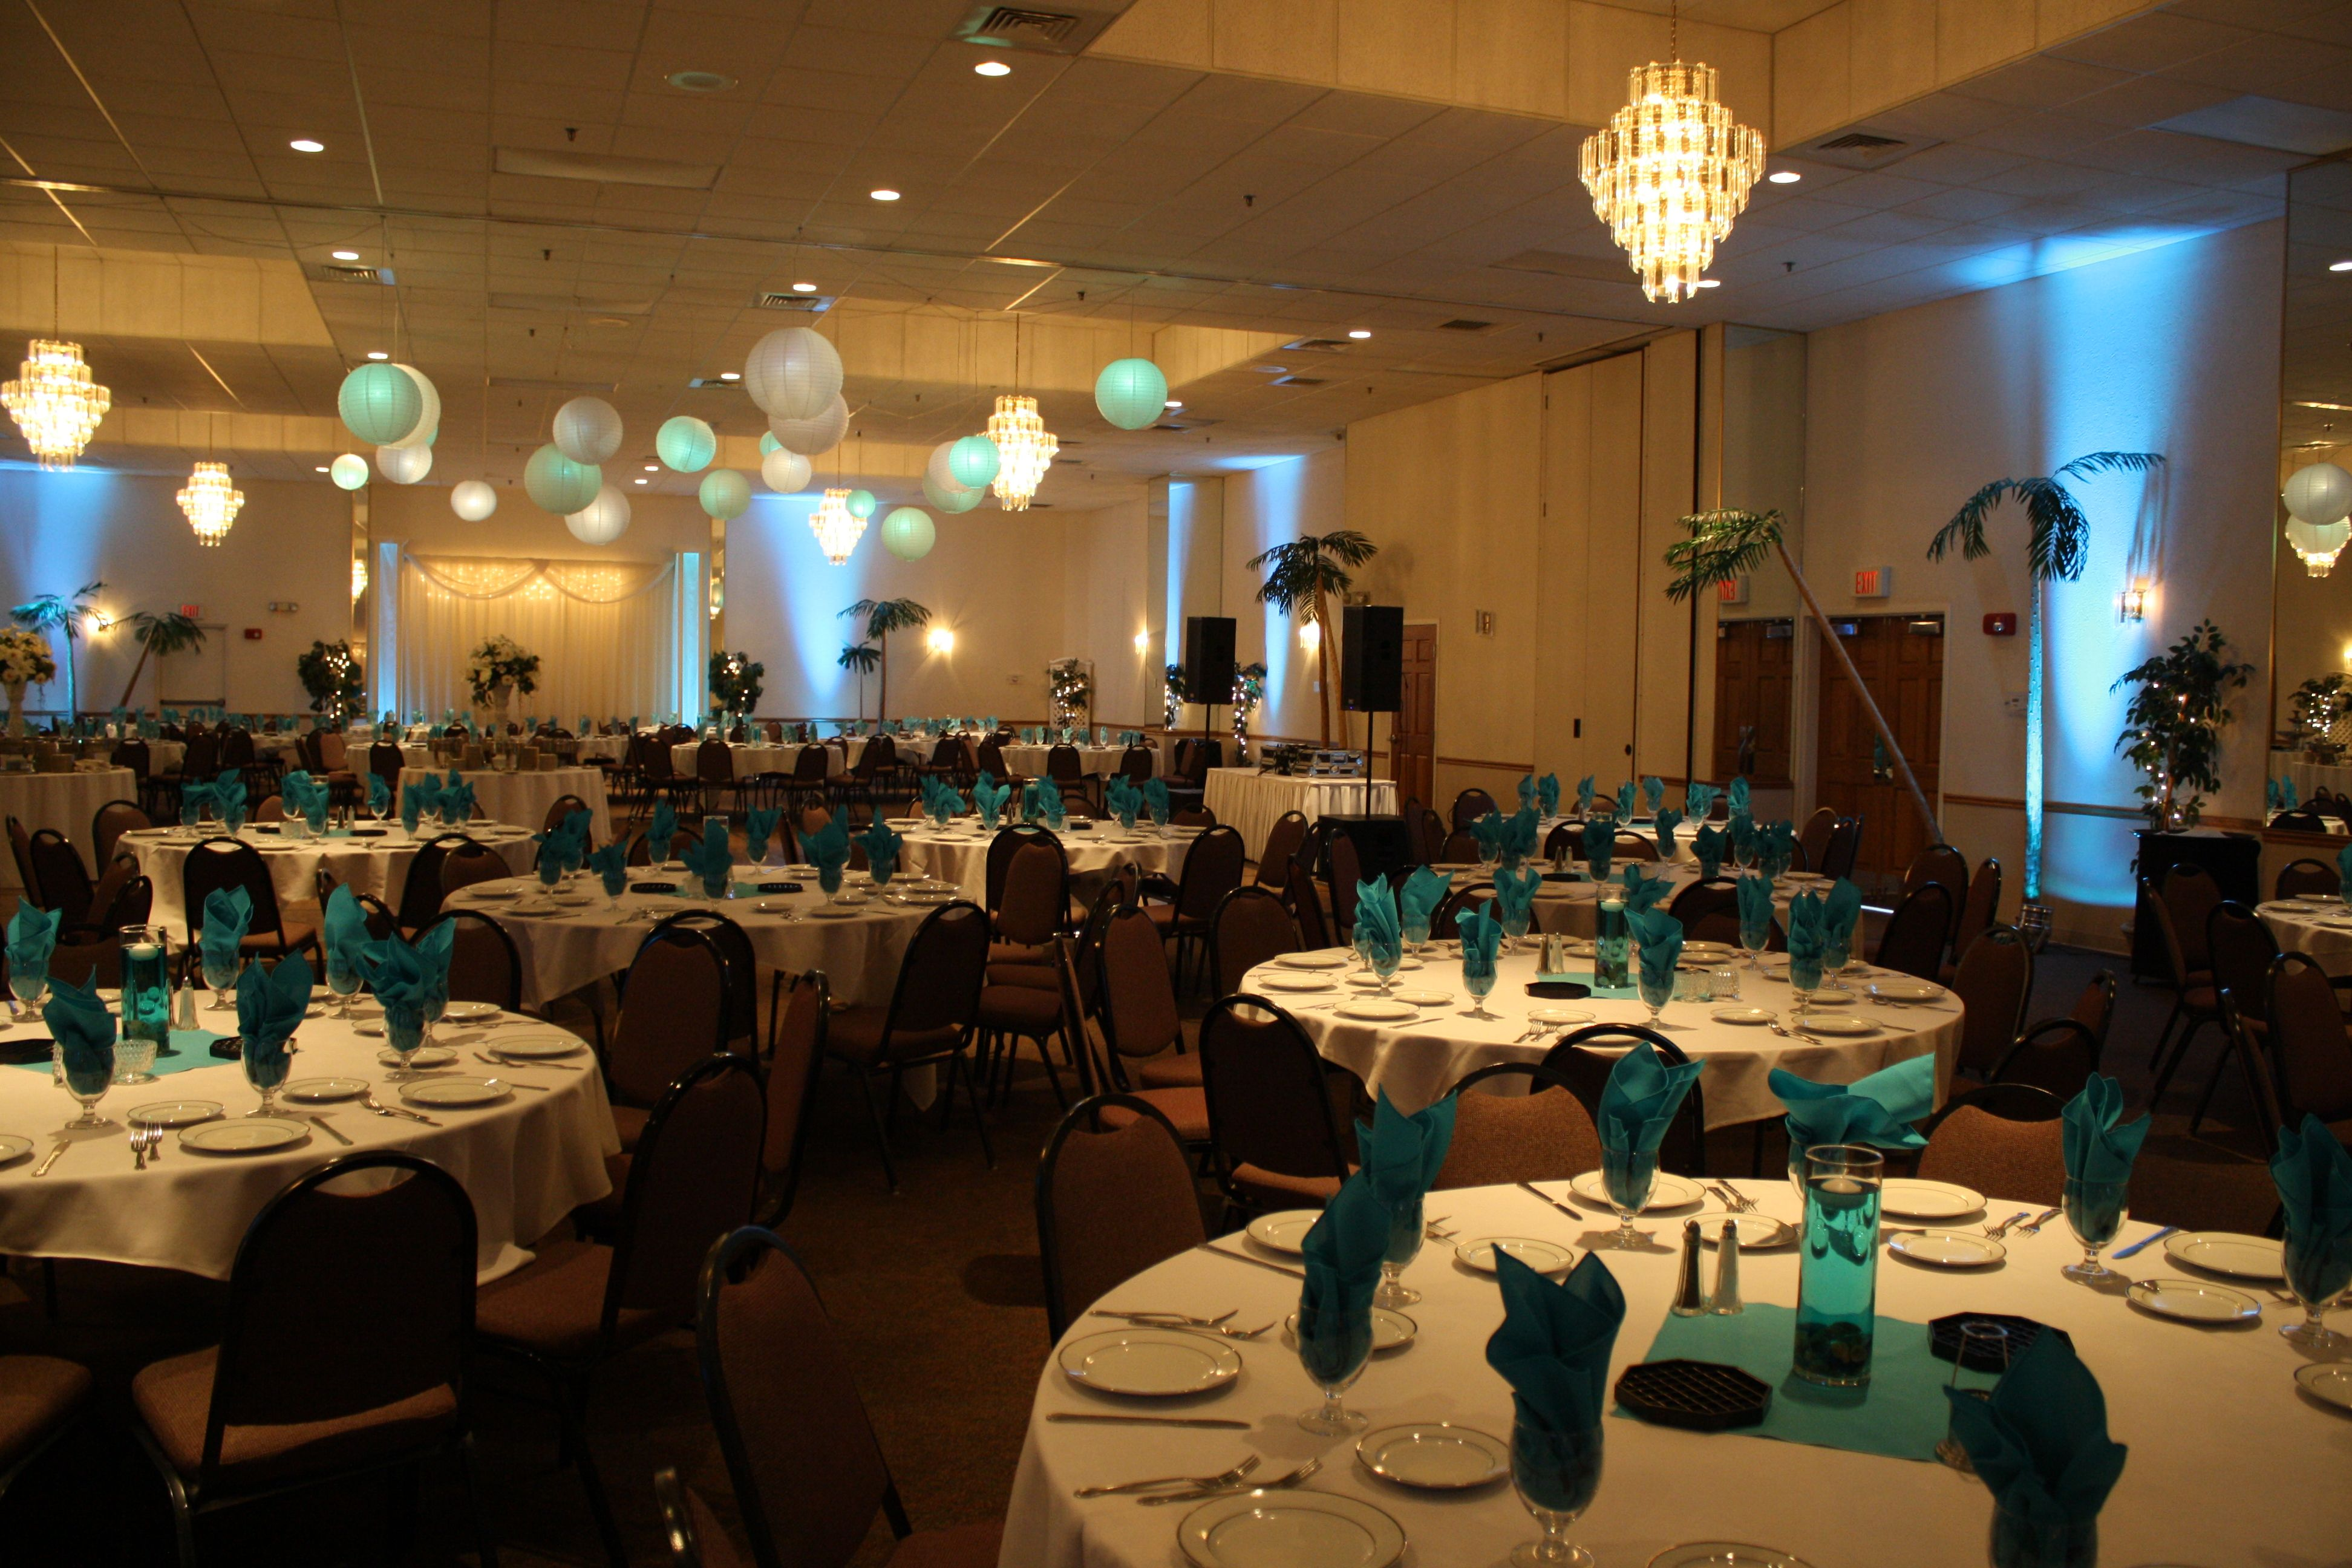 tropical elegance prom theme at maneeley's ballroom in south